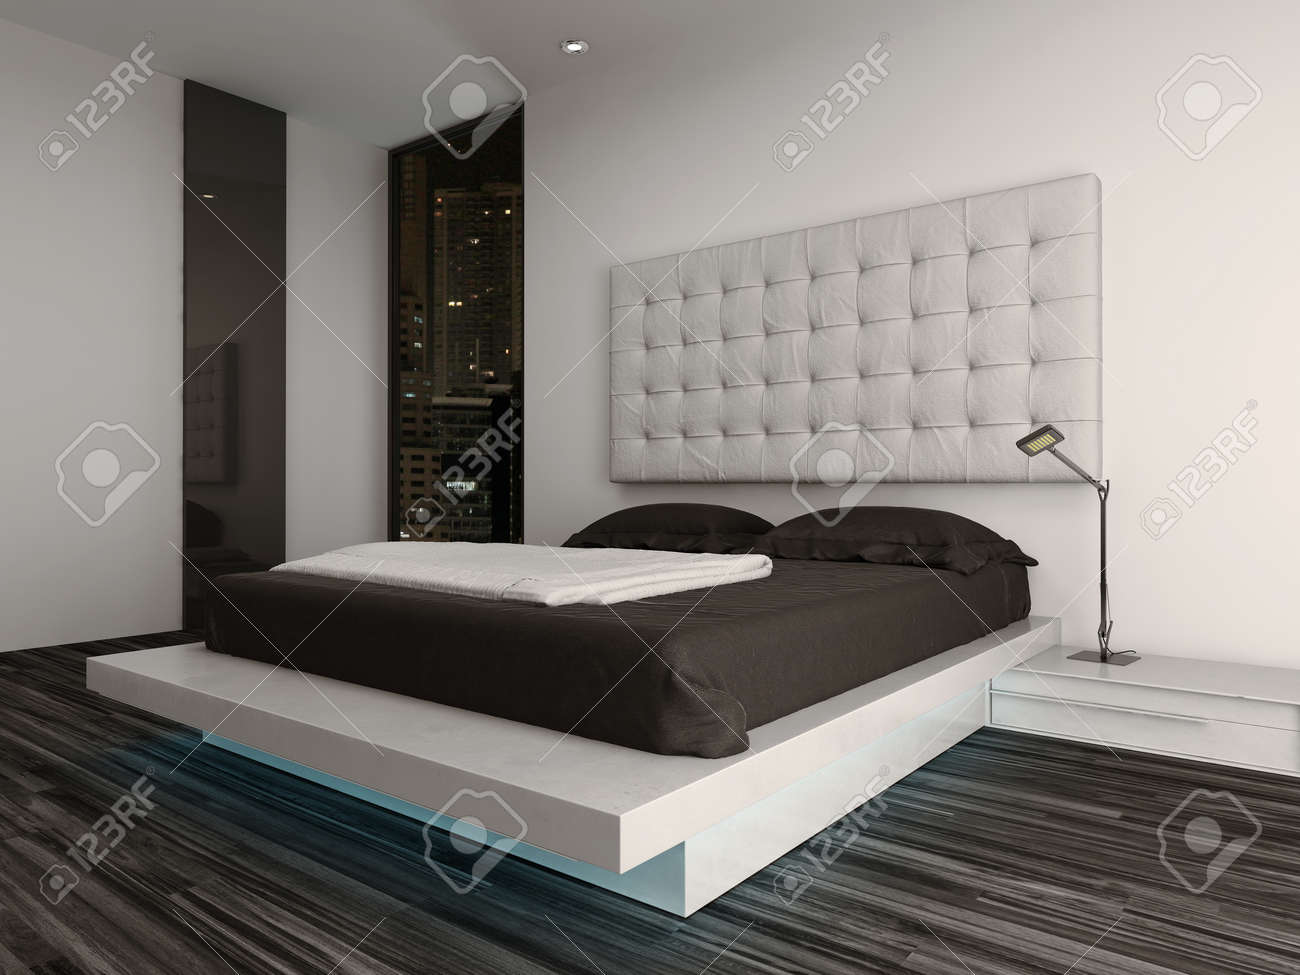 Nice Bedroom Interior With Modern Furniture And Cozy Bed Stock ...